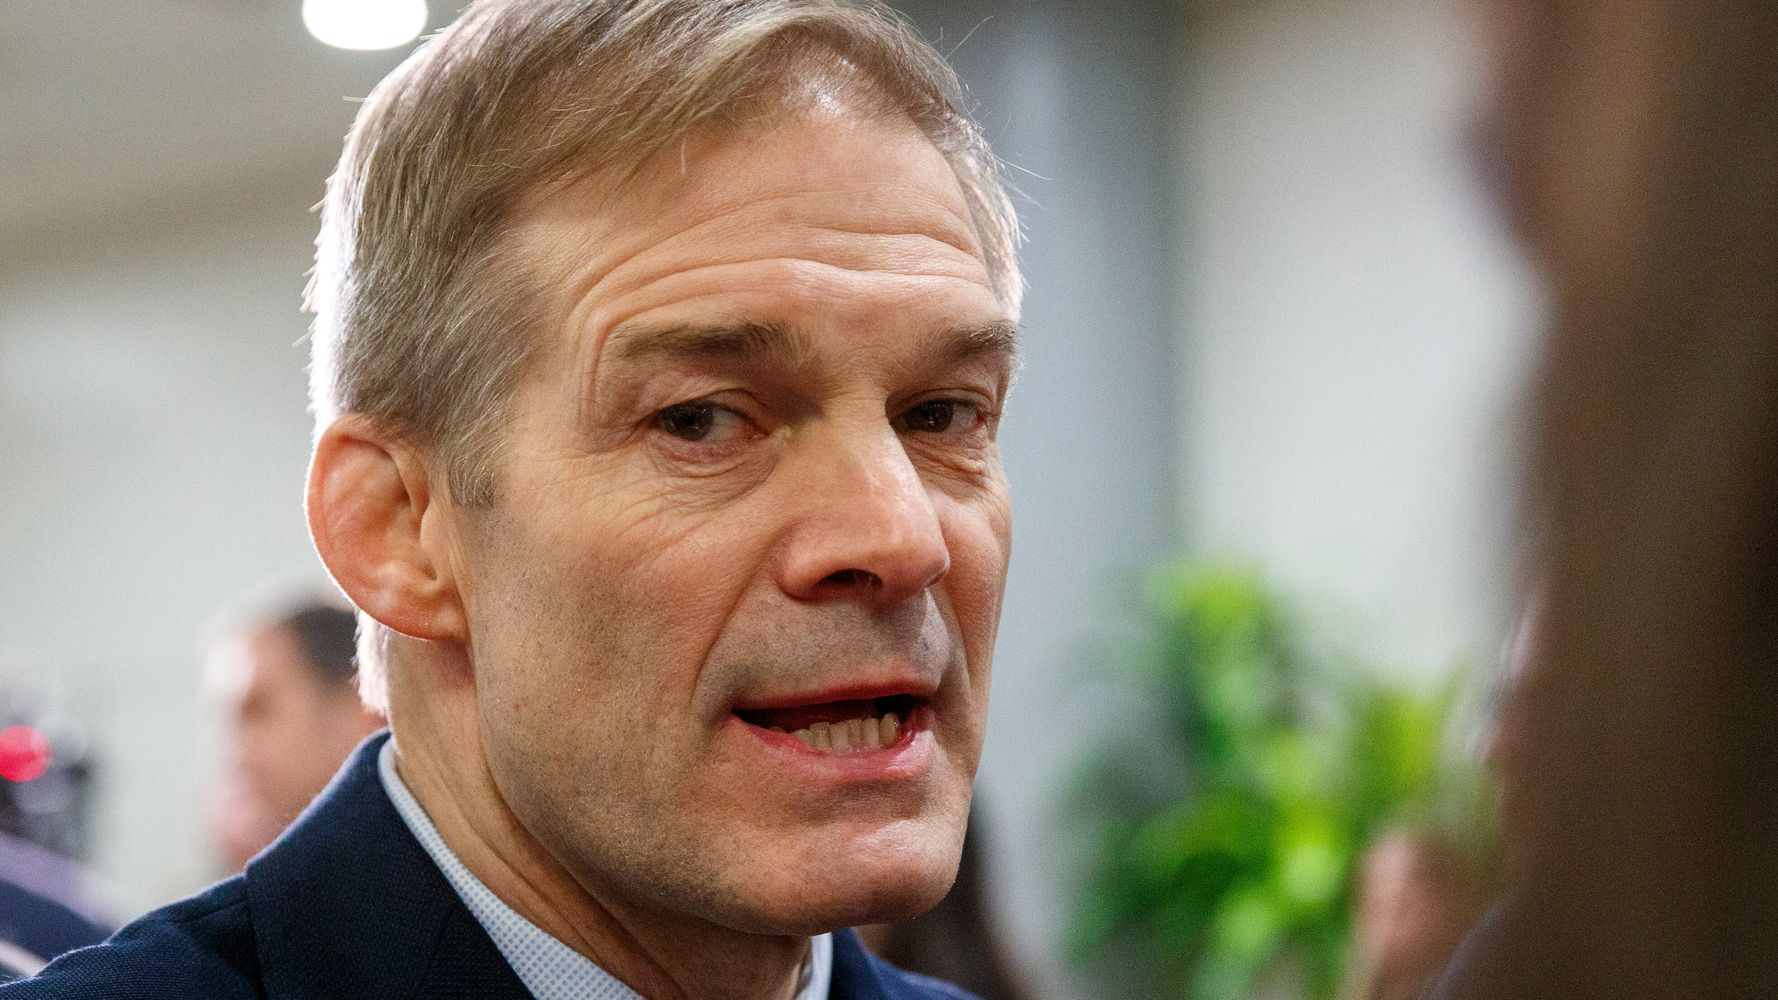 Now 6 Wrestlers Say Jim Jordan Knew Of Doctor's Sex Abuse When He Was Coach: Report